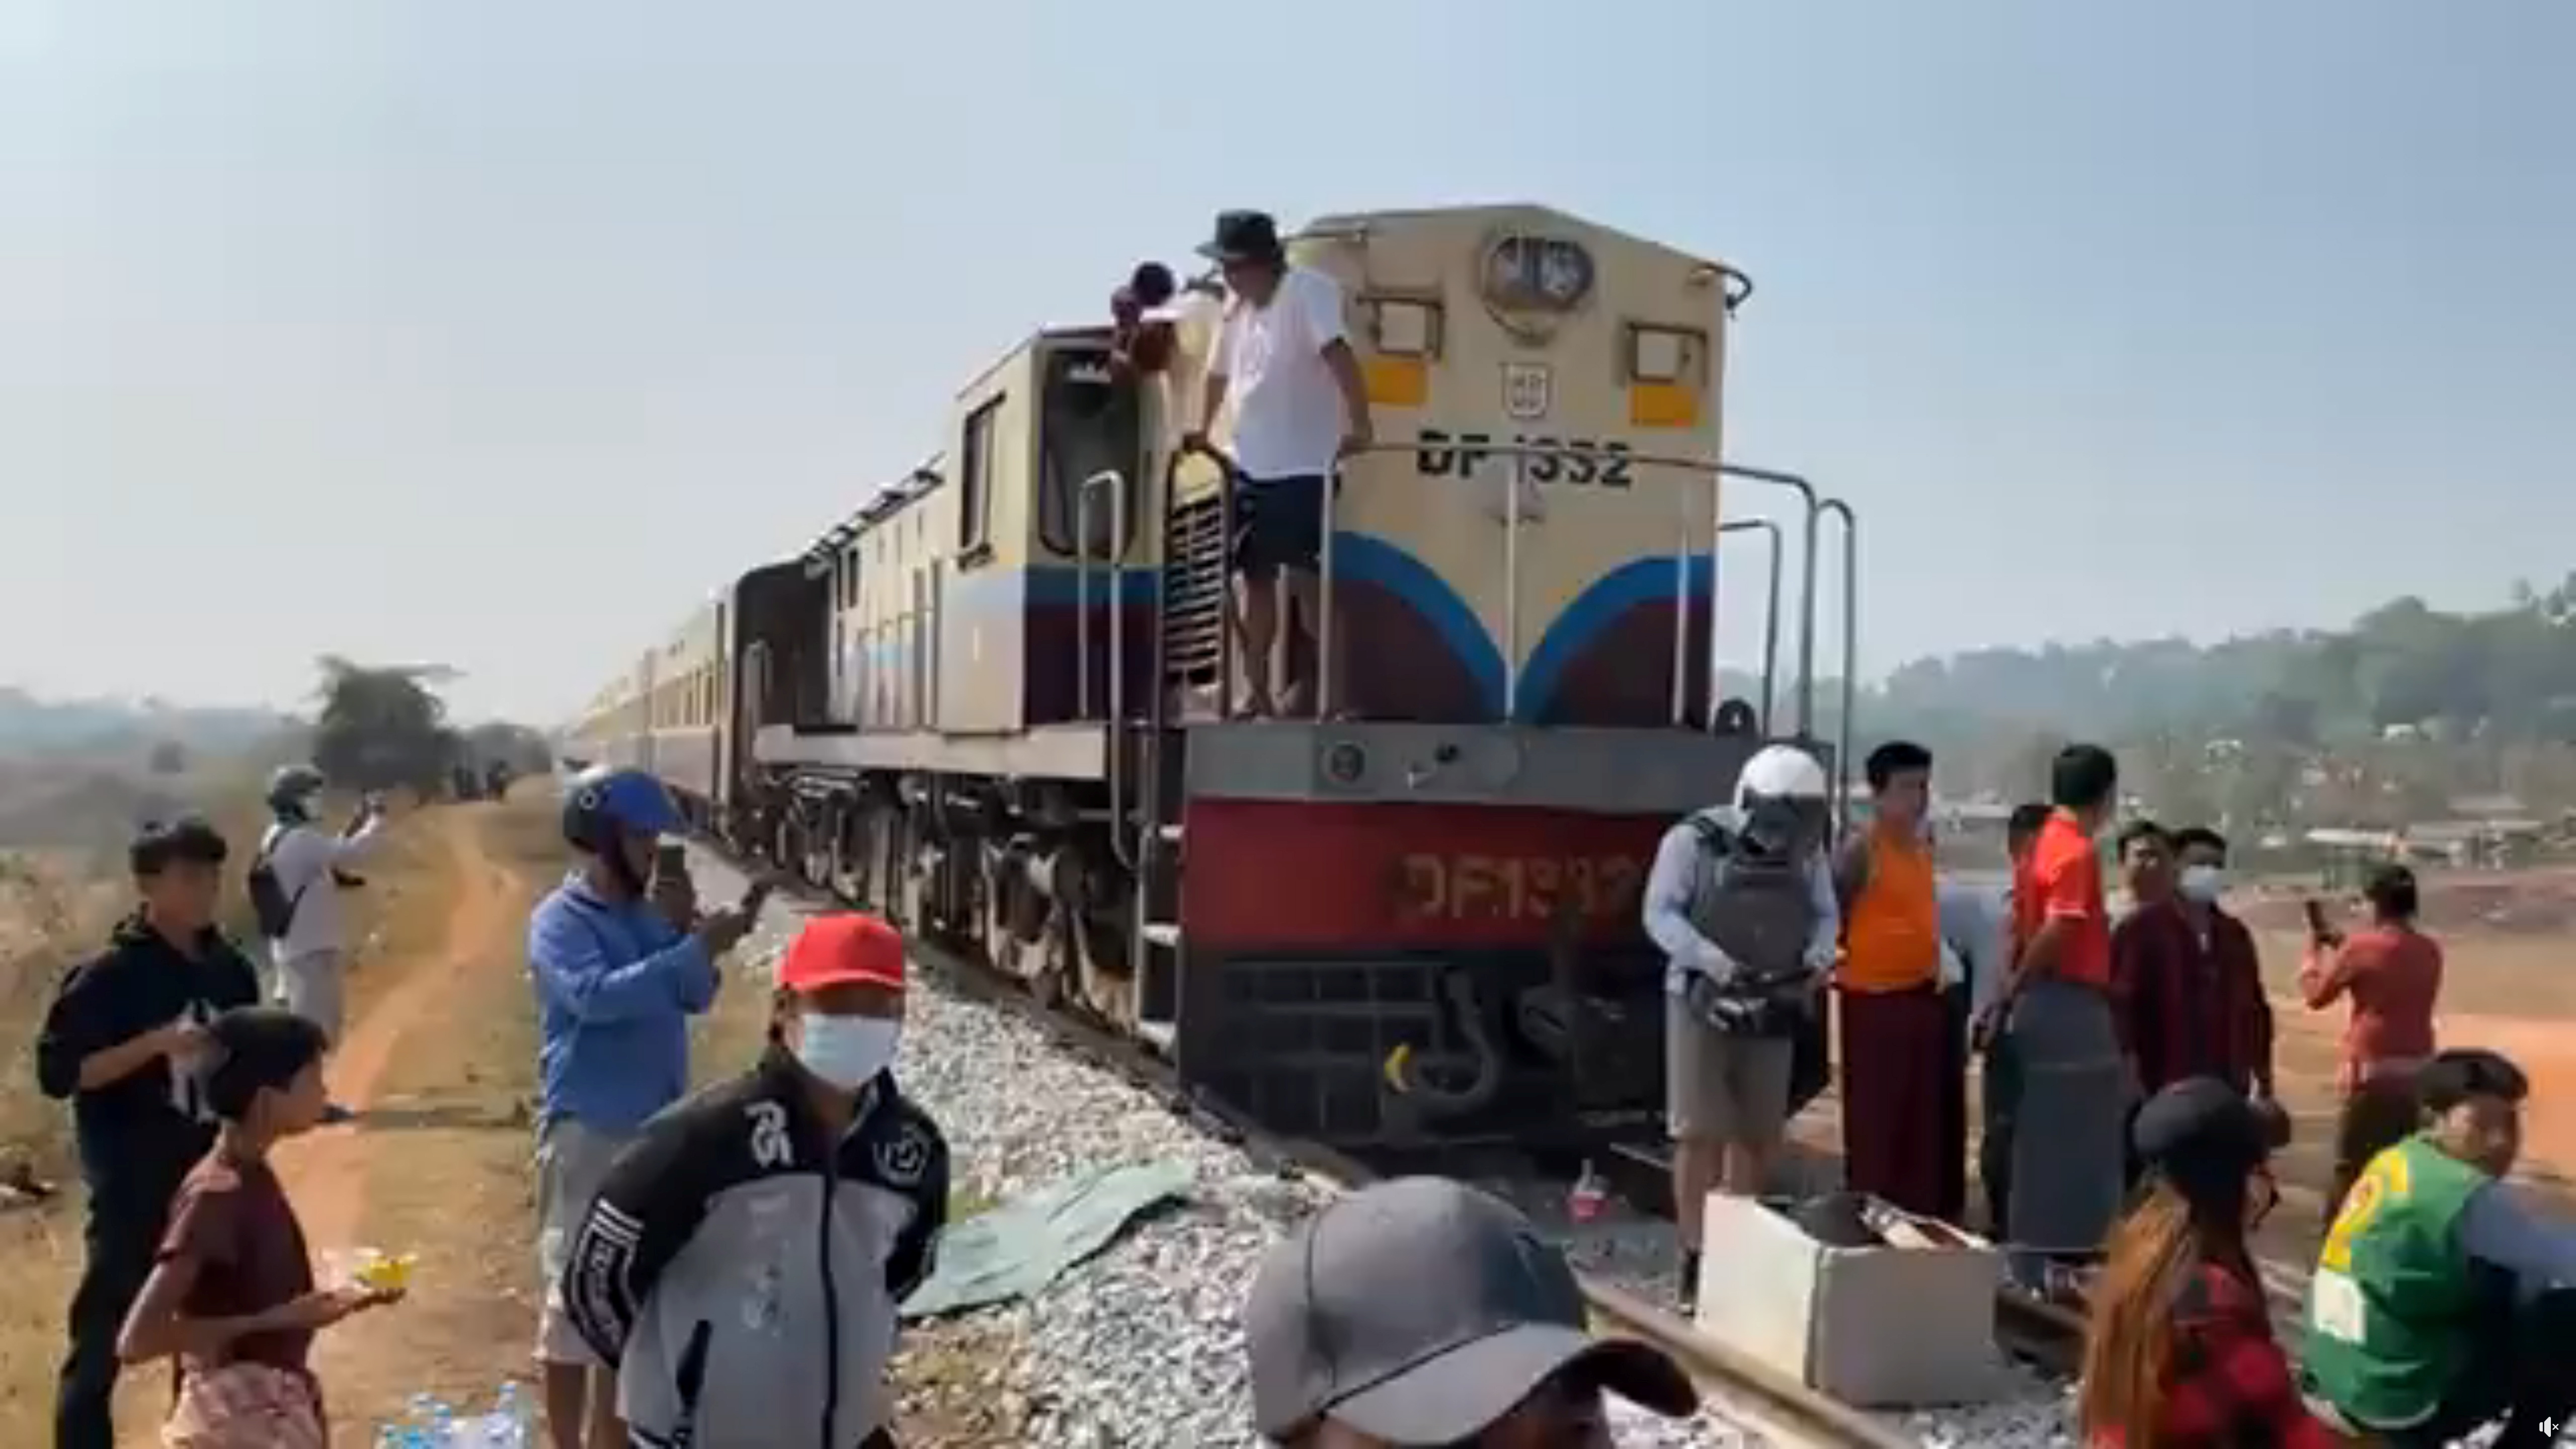 Protesters opposed to Myanmar's military coup block railway between Yangon and Mawlamyine